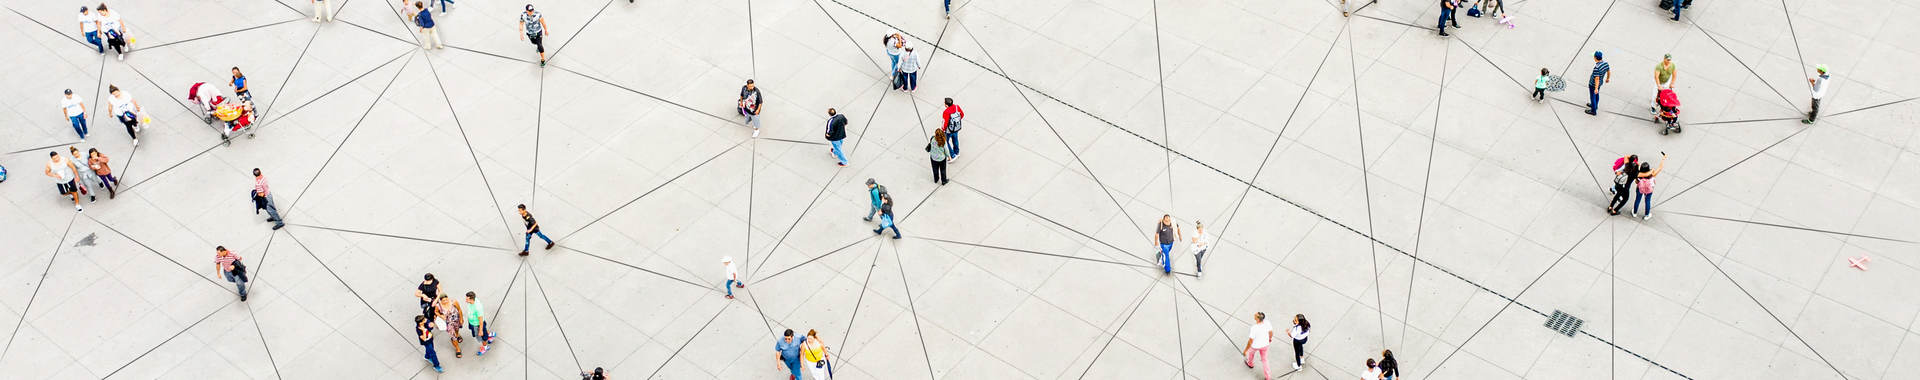 Groups of people standing being connected by lines on the ground.